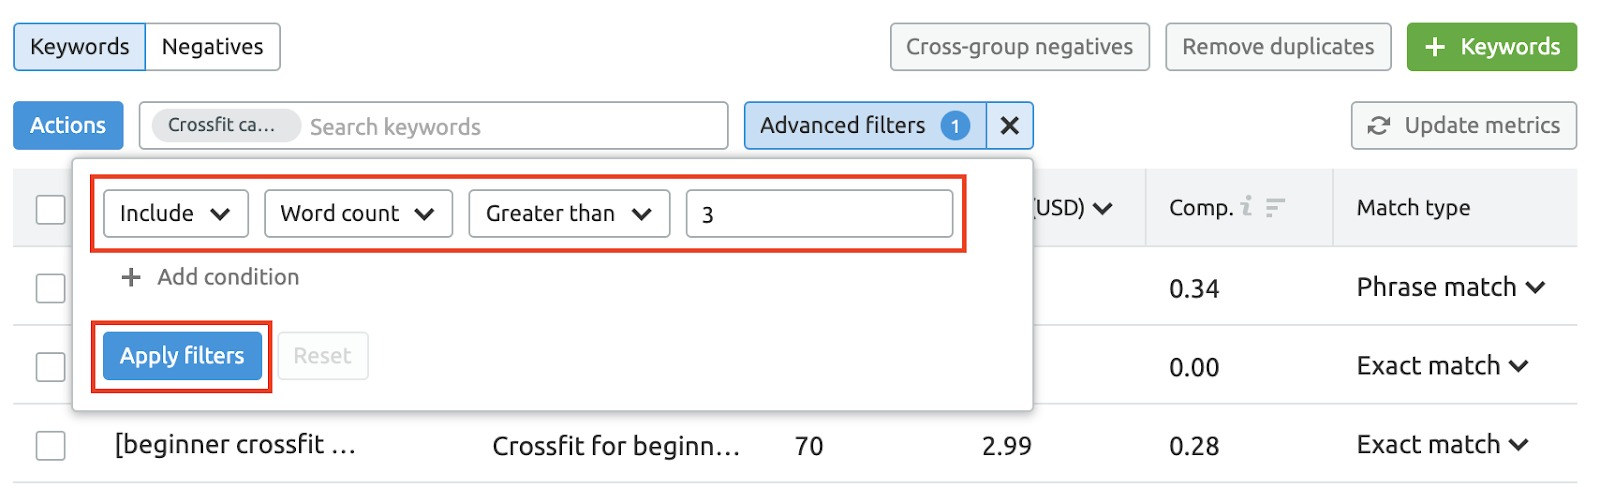 PPC Keyword Tool Recommendations image 11